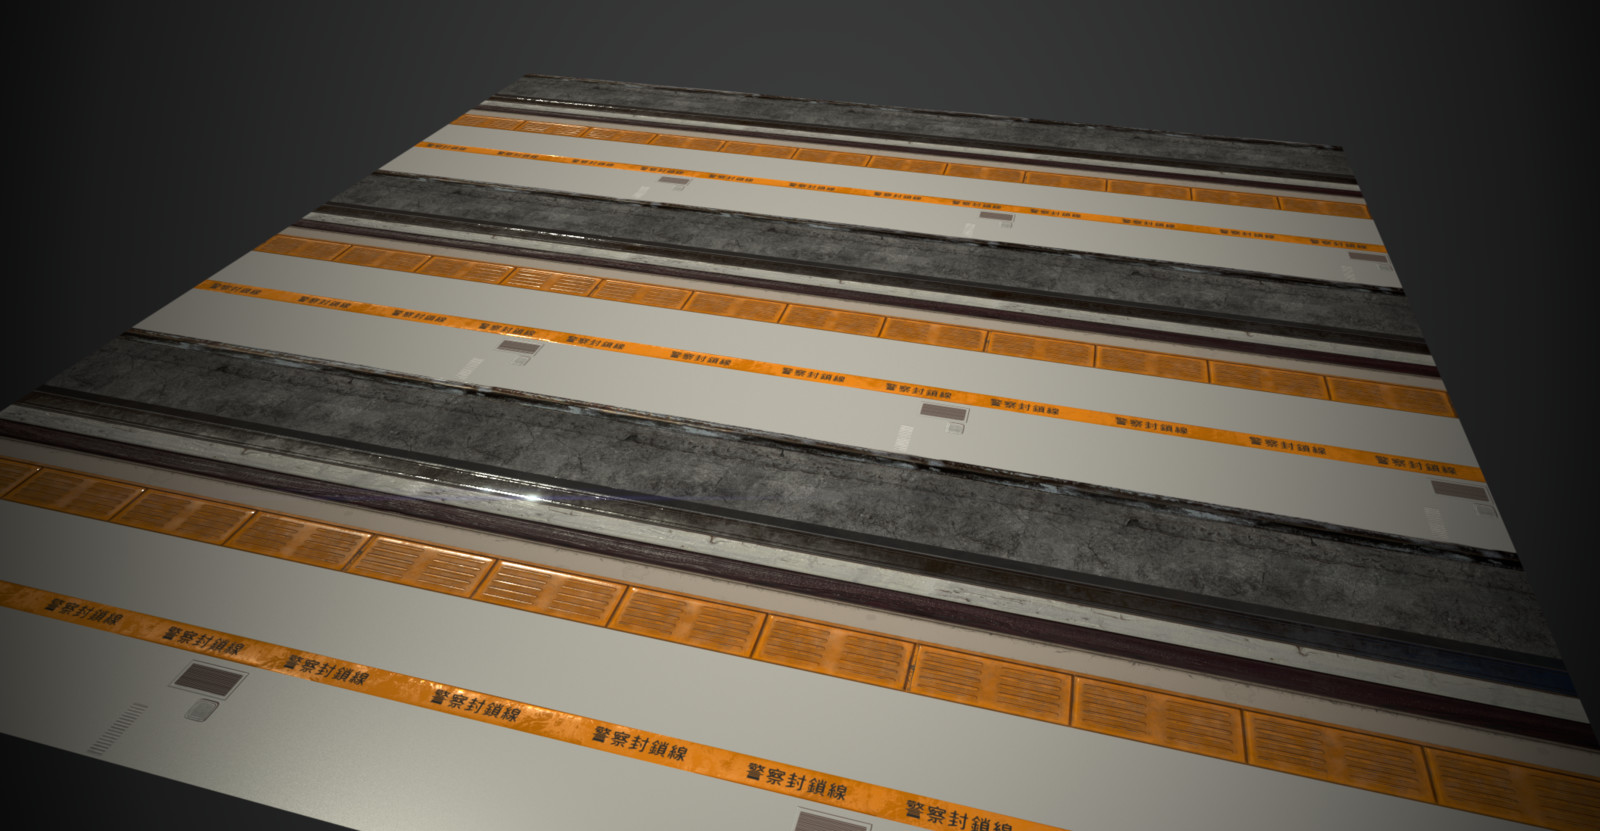 Trim sheet material I made for the scene